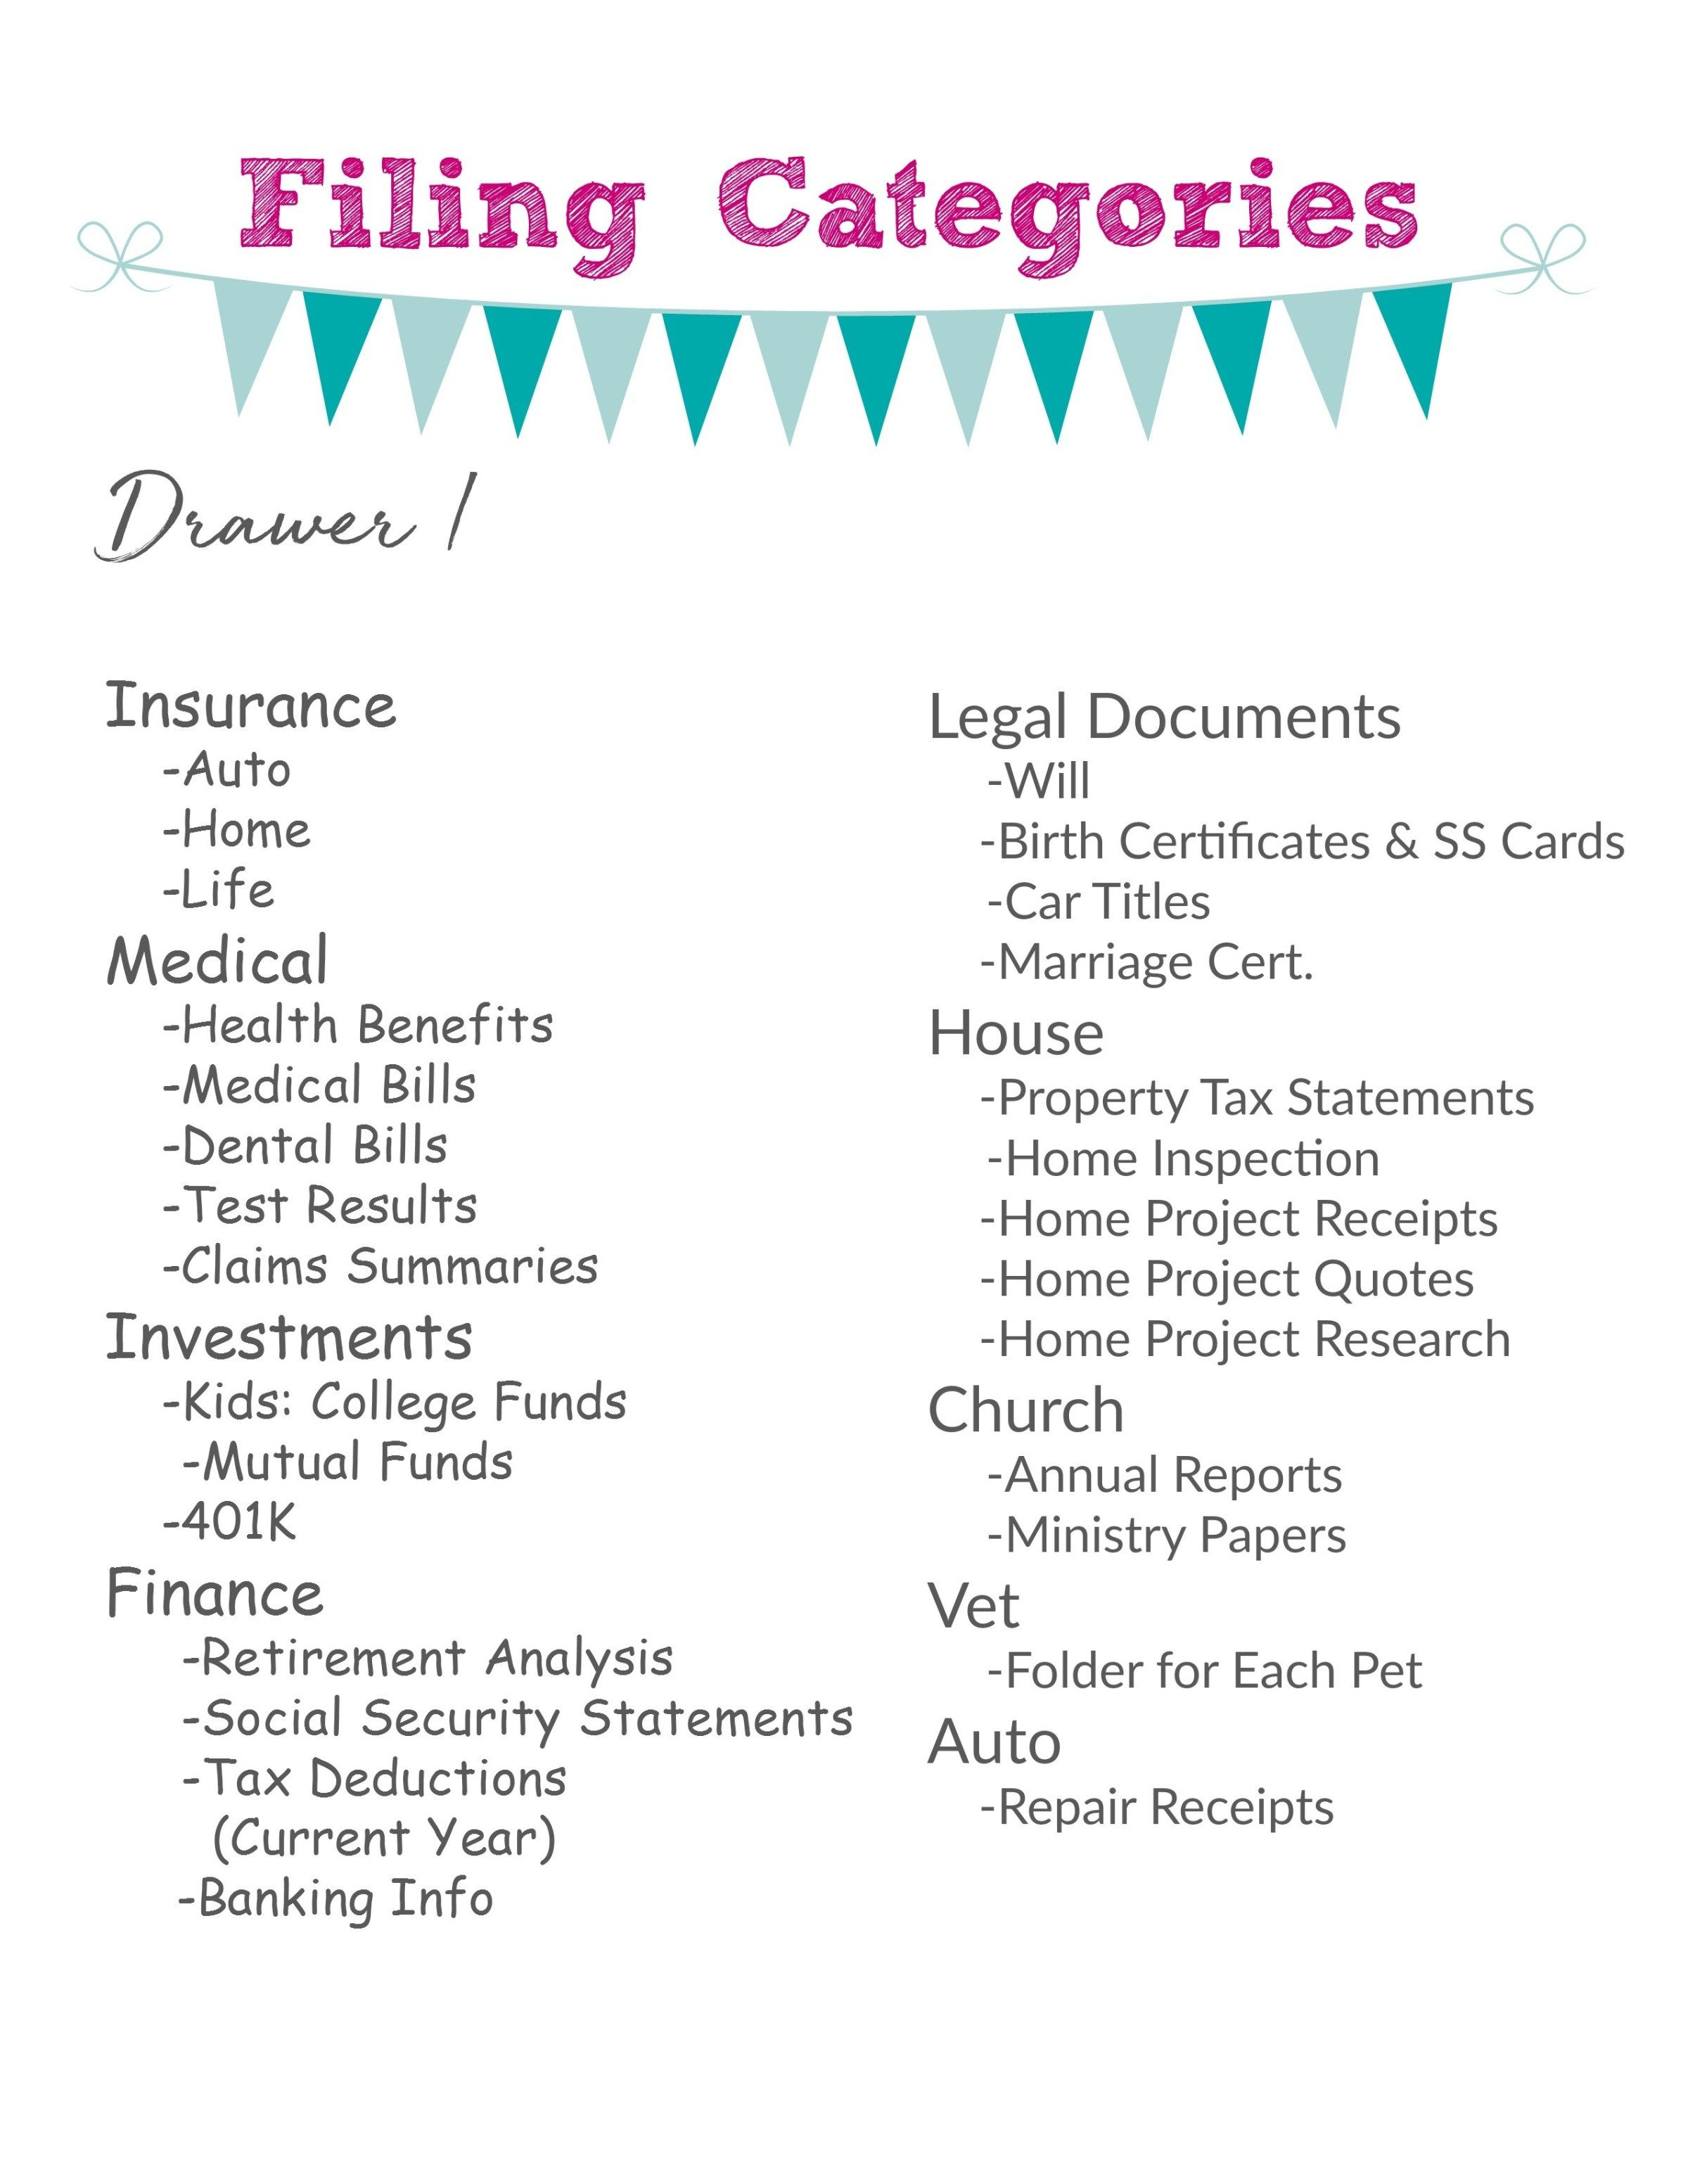 Organizing And Adding Categories To Your Filing Cabinet Soon To